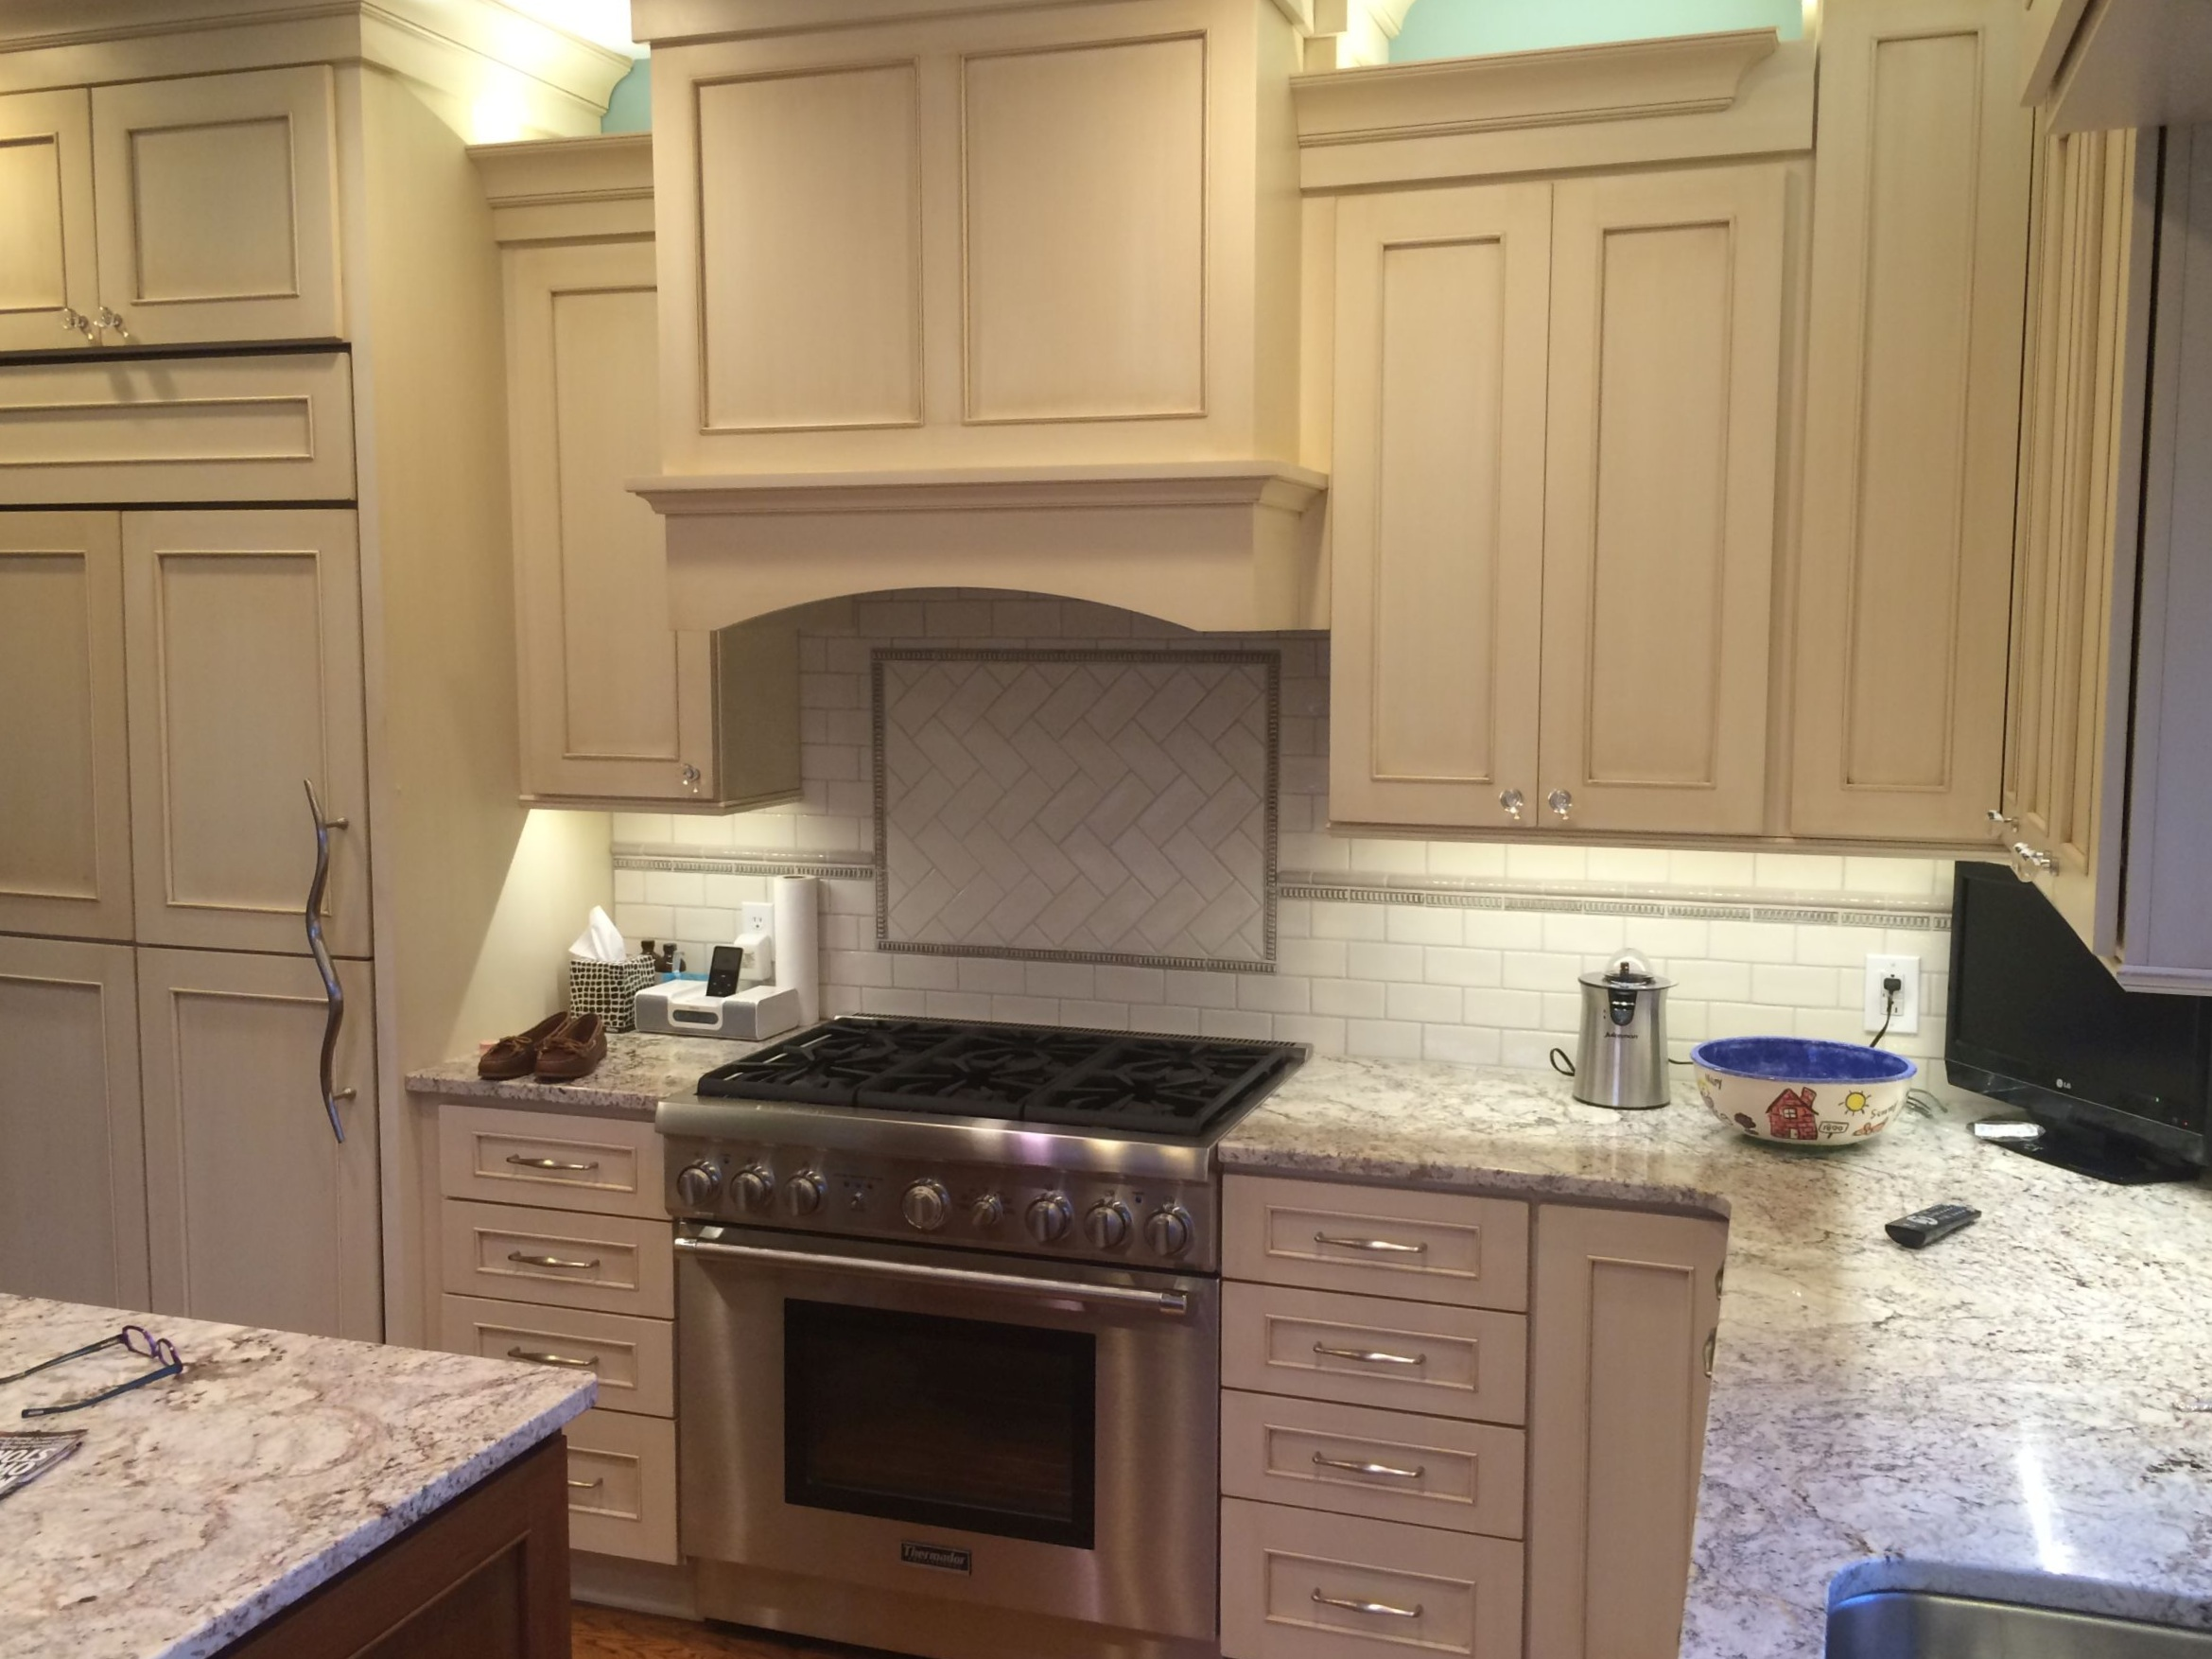 Kitchen remodel: New counter tops, cabinets, flooring, back splash, appliances, hidden fridge, kitchen island, and more.